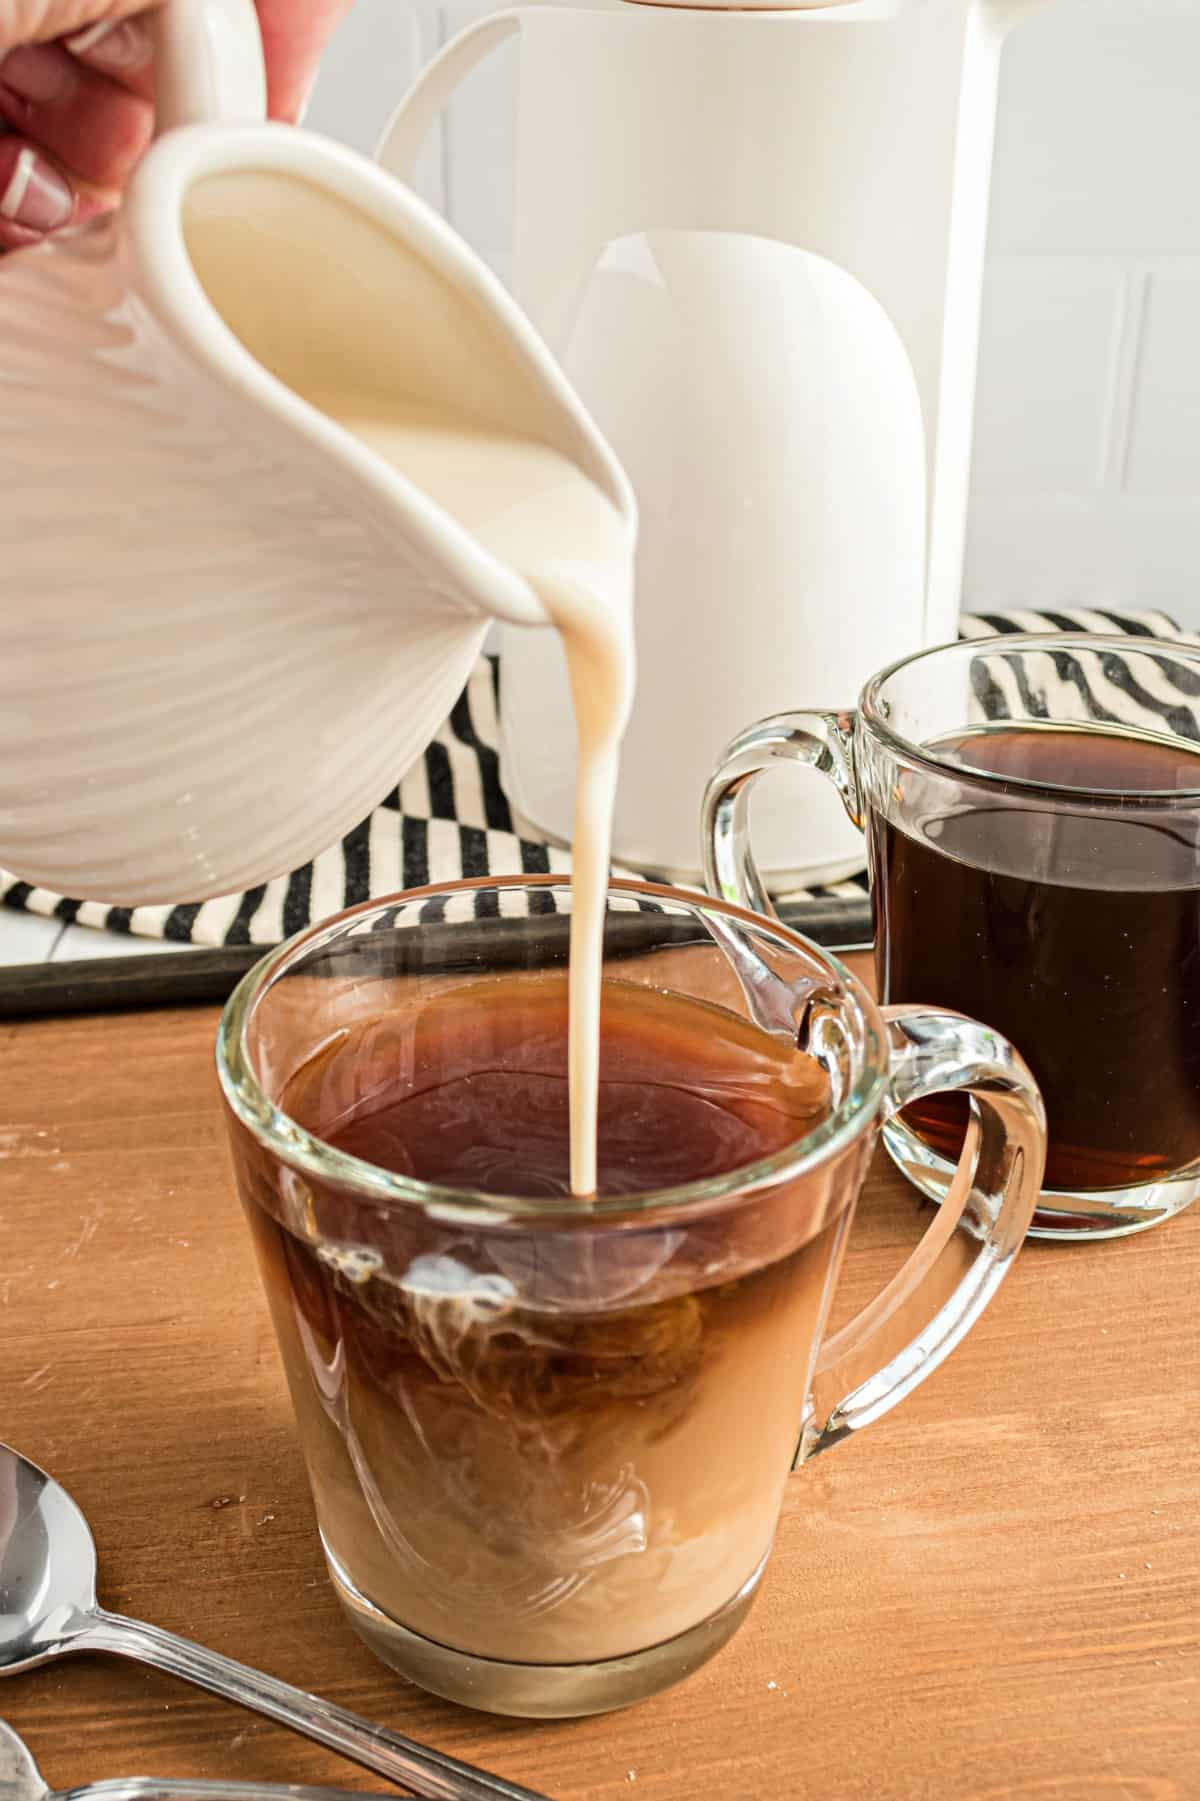 Clear mug of coffee with pitcher of coffee creamer being added to coffee.